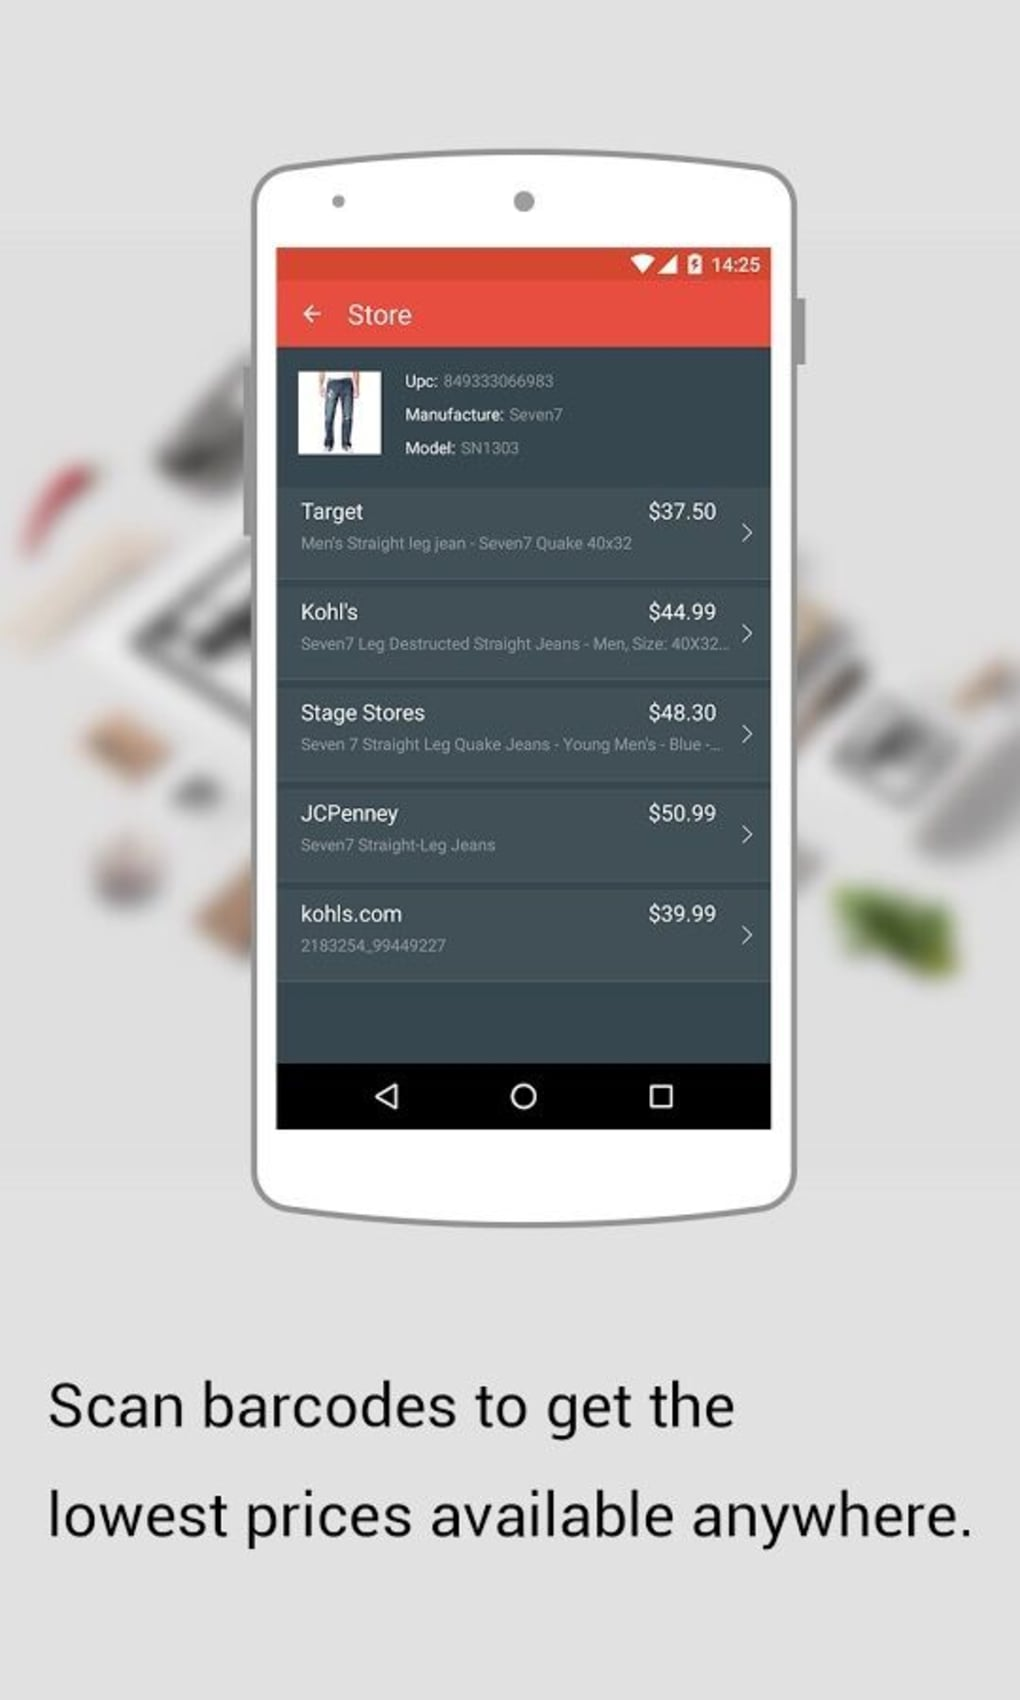 Download Barcode Scanner APK for Android - free - Softonic